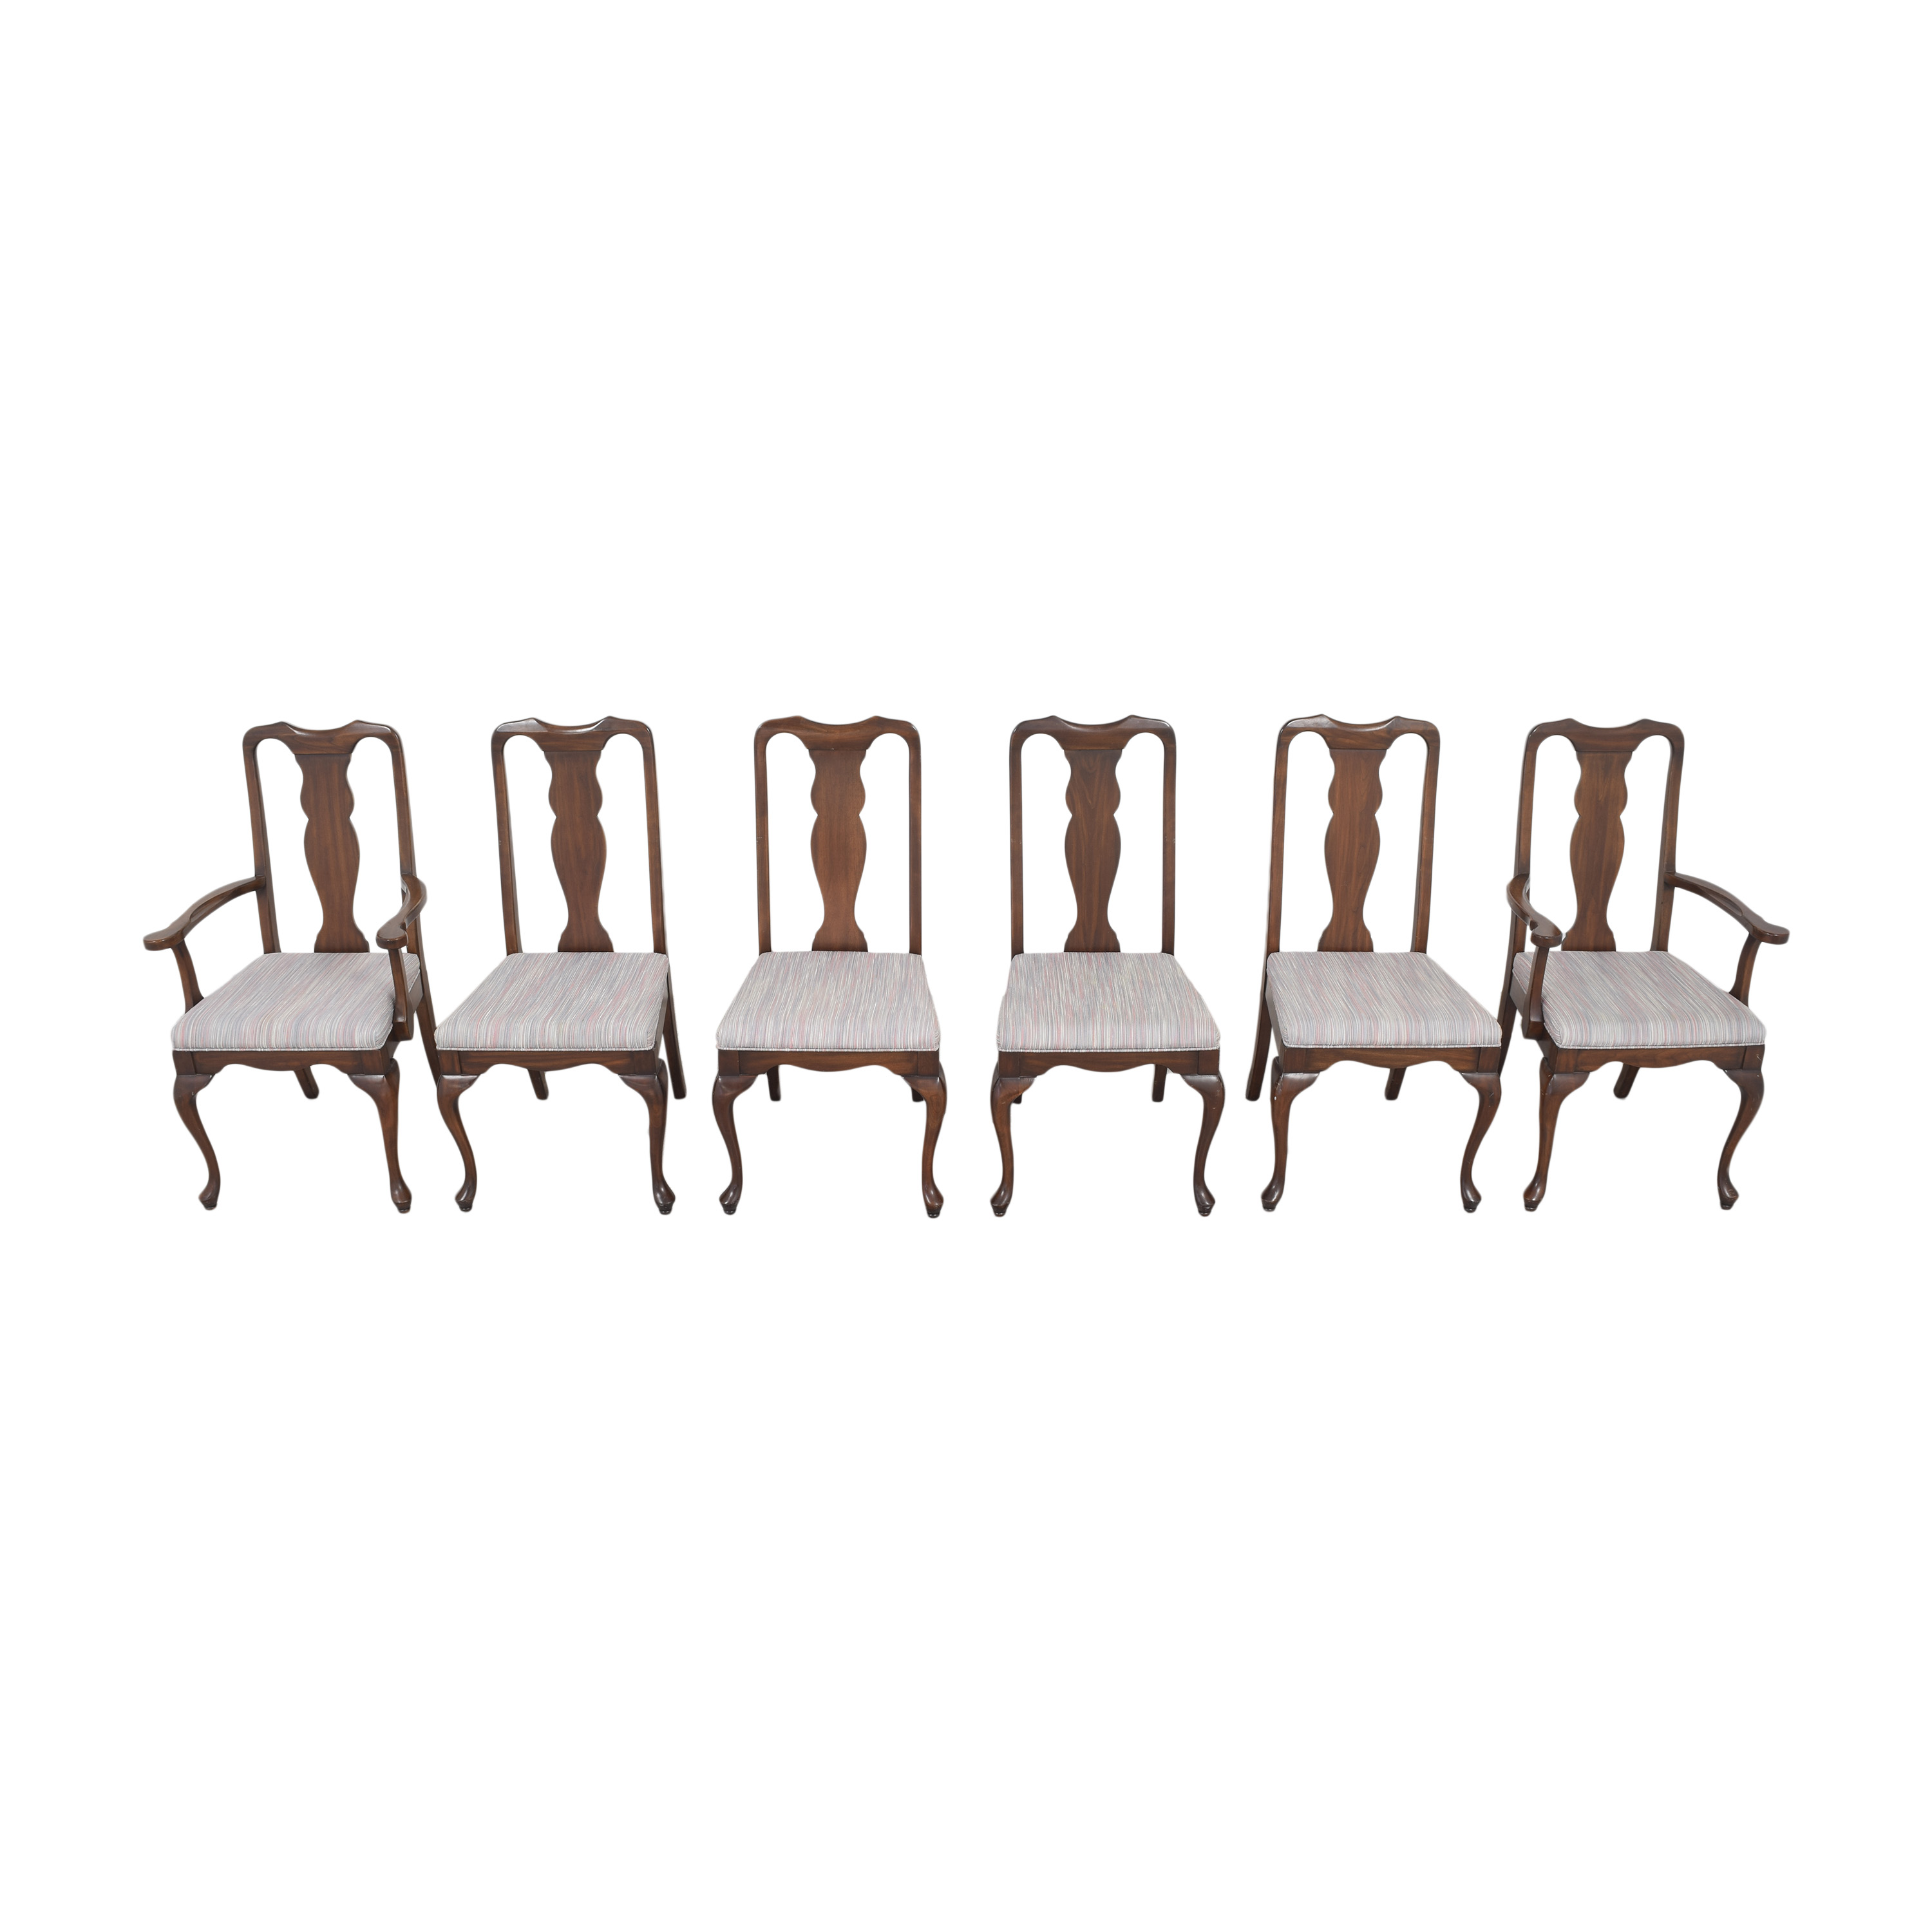 Harden Harden Upholstered Dining Chairs on sale